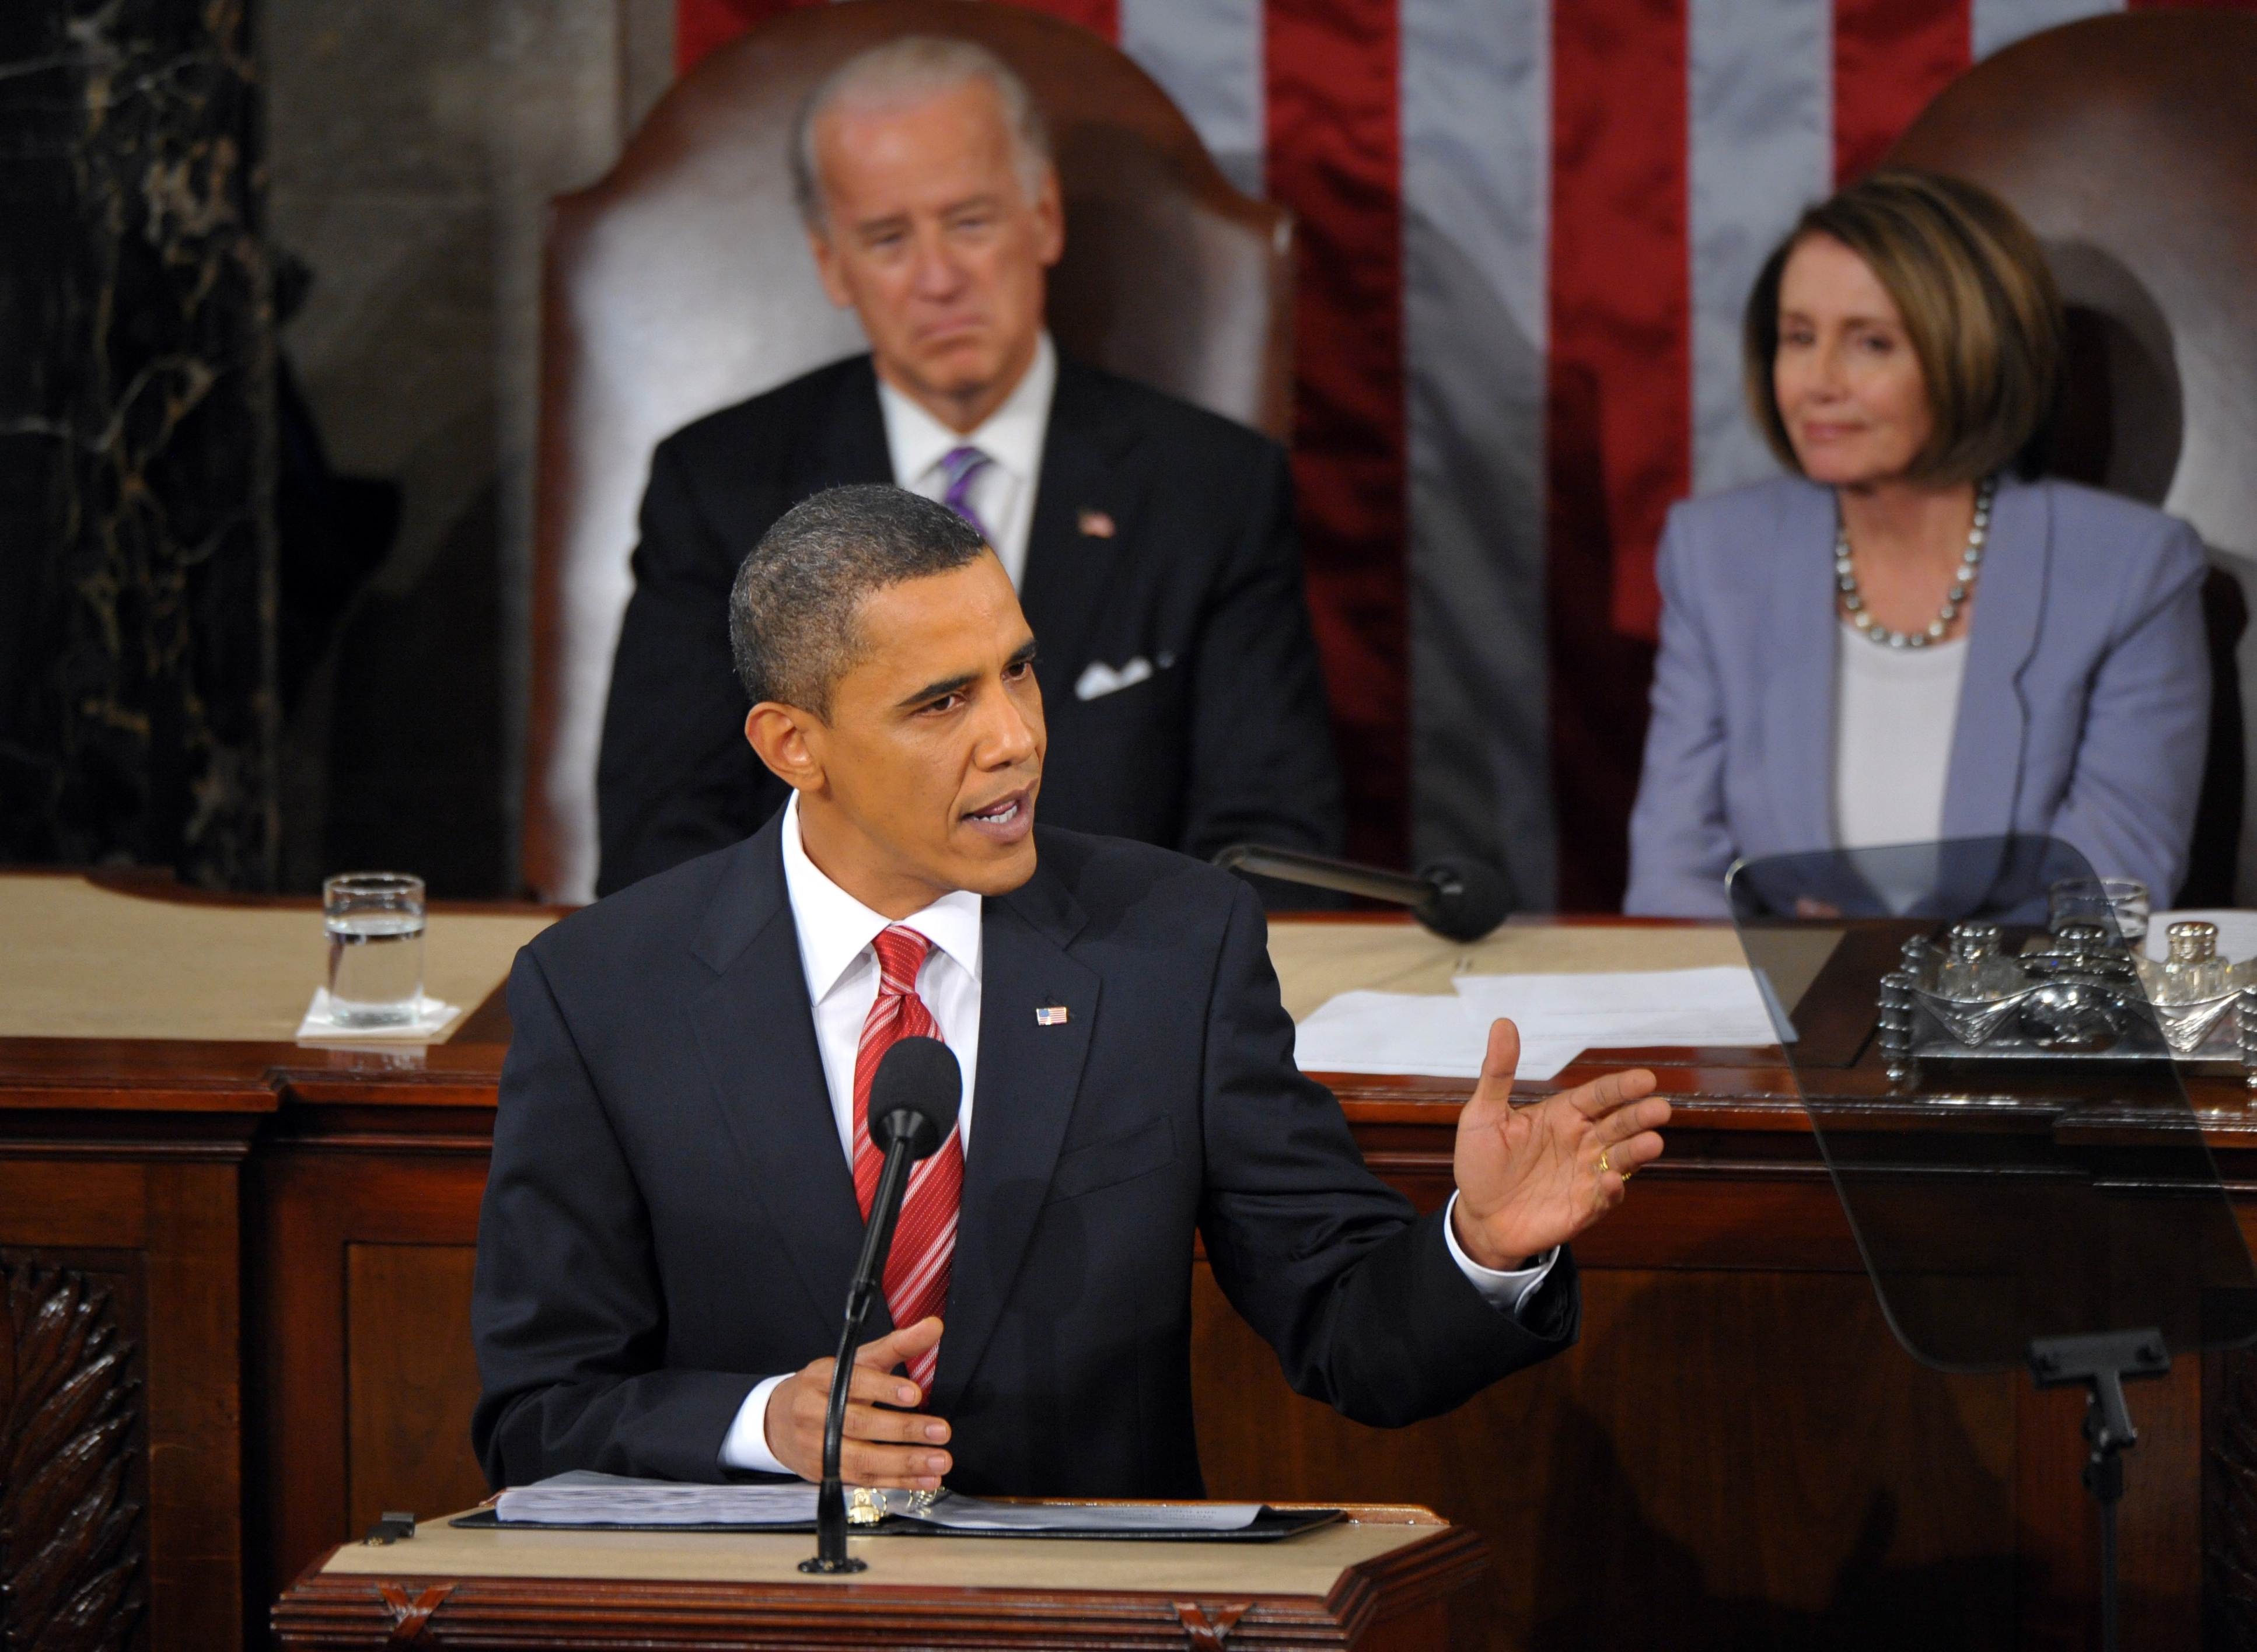 US President Barack Obama delivers his first State of the Union address January 27, 2010 at the US Capitol in Washington, DC. Obama declared that the worst of the economic storm had passed, but that a trail of devastation was left behind. Seated behind Obama is Vice President Joe Biden and House Speaker Nancy Pelosi. AFP PHOTO/Mandel NGAN (MANDEL NGAN/AFP/Getty Images)